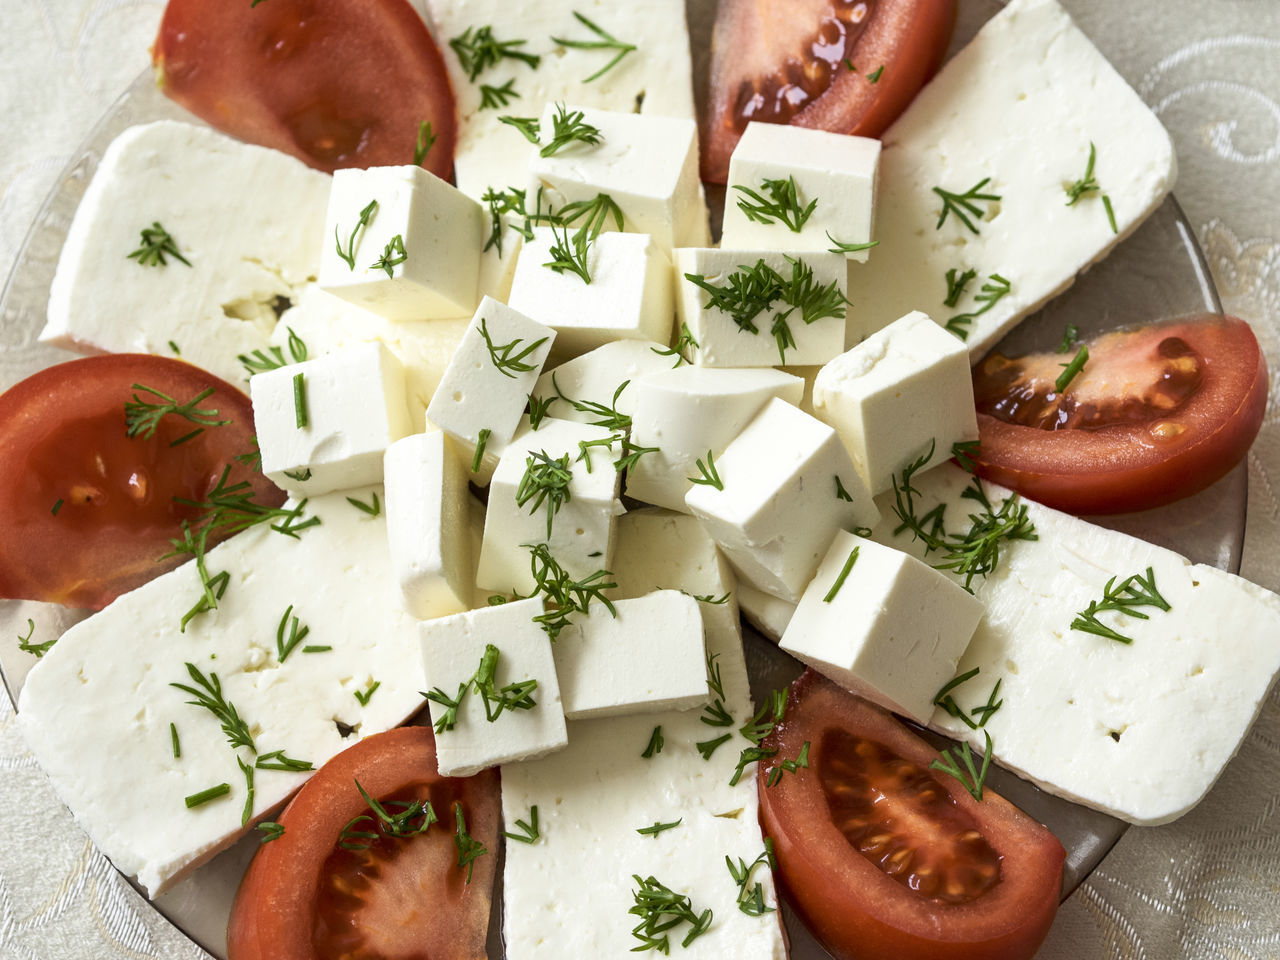 plate of soft cheese (feta and bryndza) with tomatoes Adult Adults Only Annual Event Bryndza Cheese Day Feta Food Freshness Healthy Eating High Angle View Indoors  People Plate Ready-to-eat Soft Tomatoes